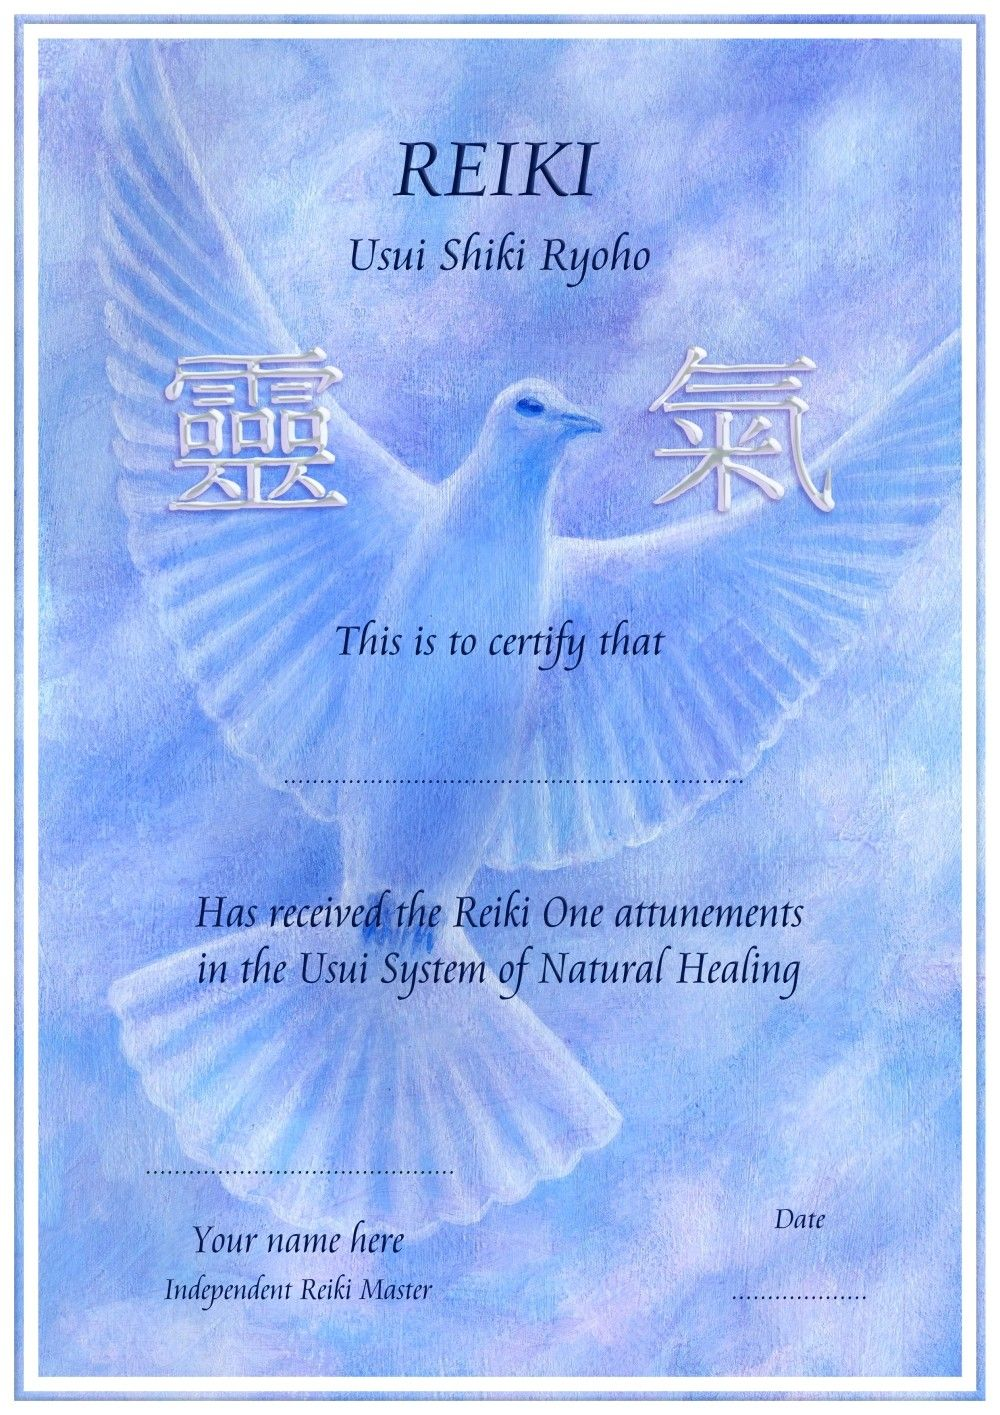 reiki certificate template books worth reading